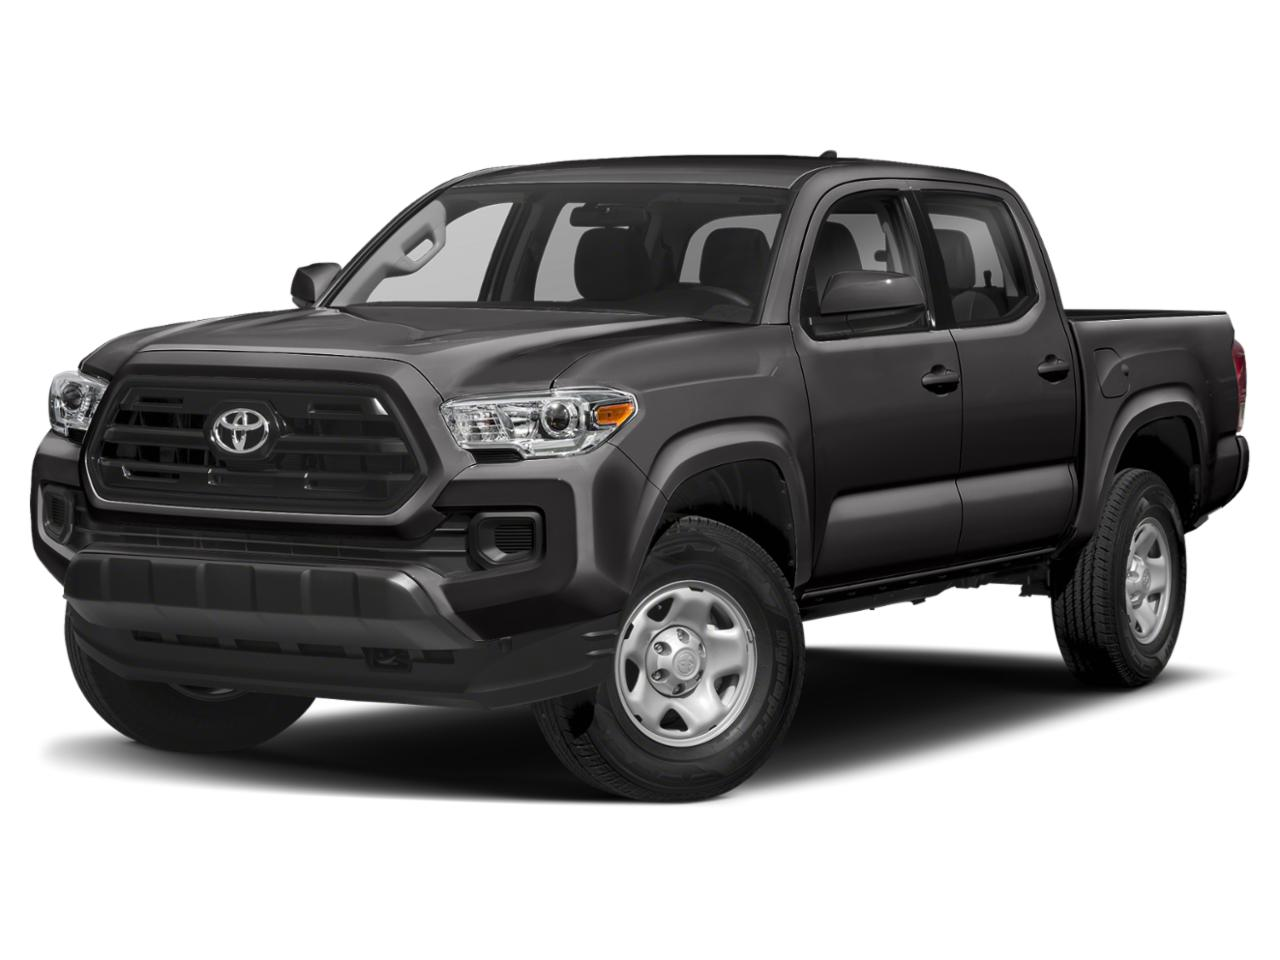 2018 Toyota Tacoma Vehicle Photo in Spokane, WA 99207